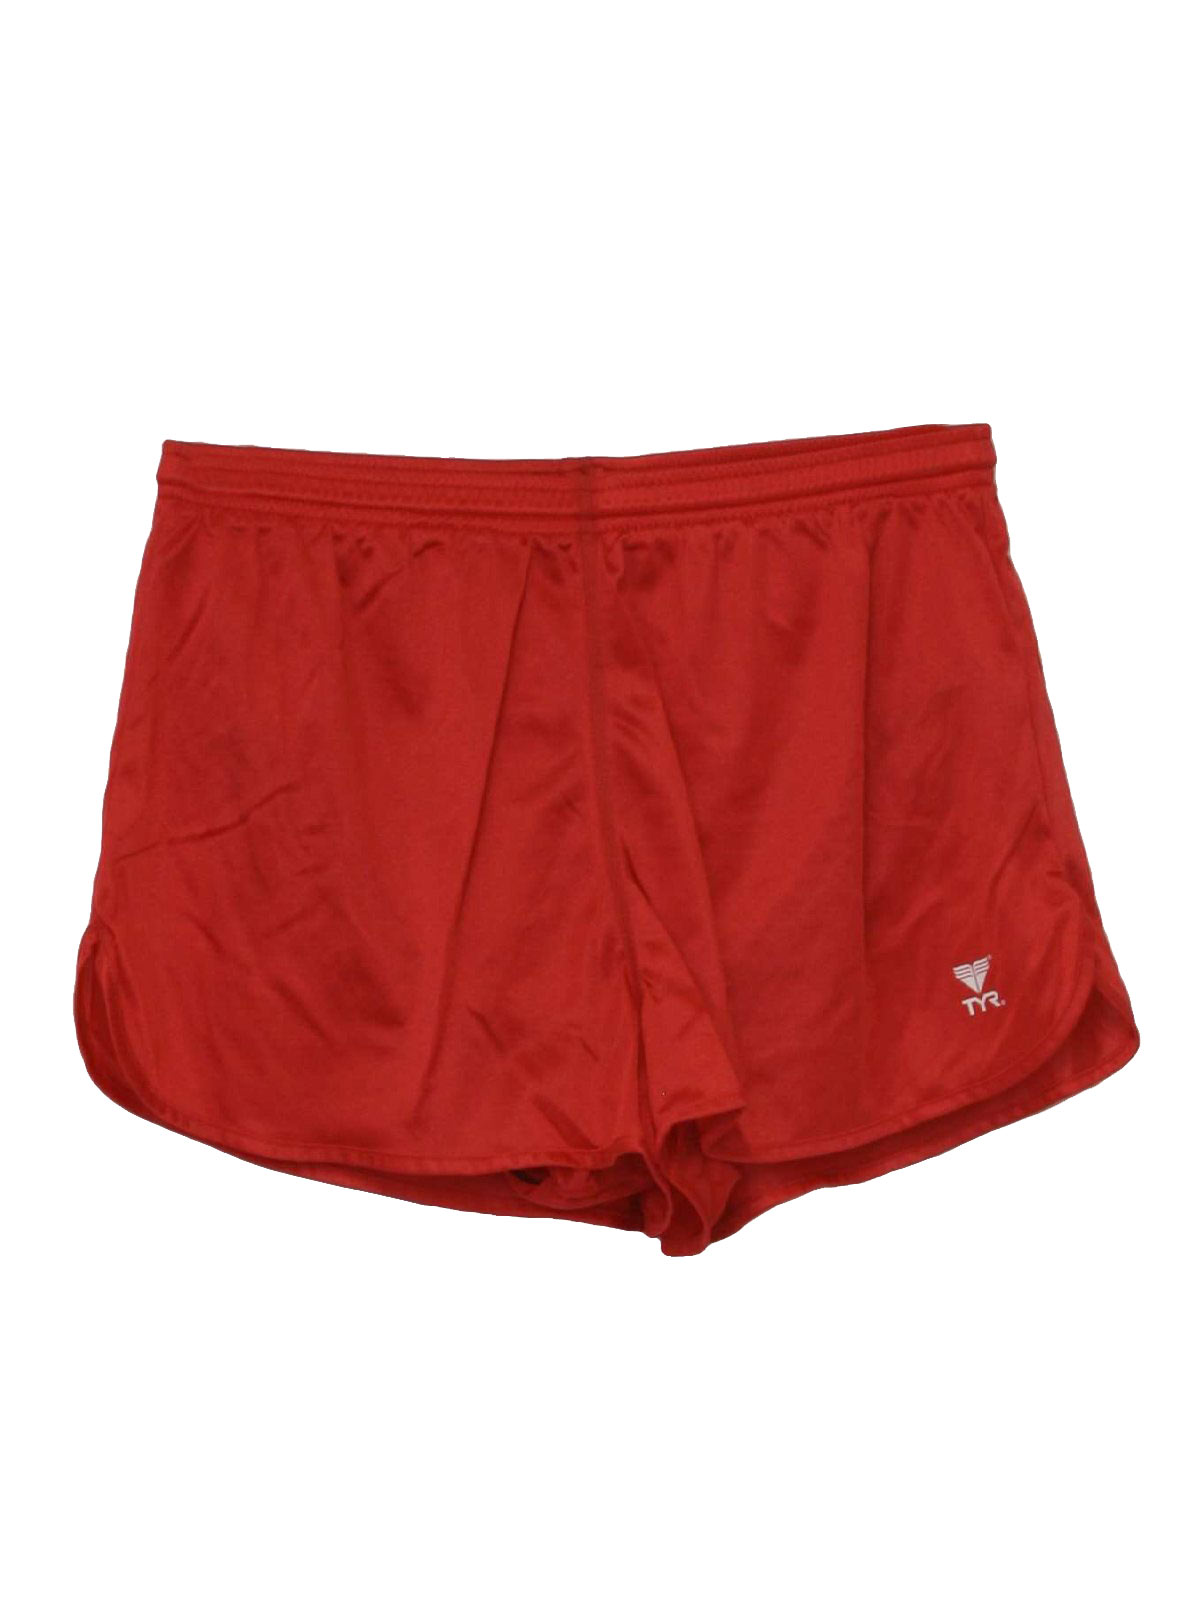 90s Shorts (TYR): 90s -TYR- Mens red nylon wicked 90s running ...